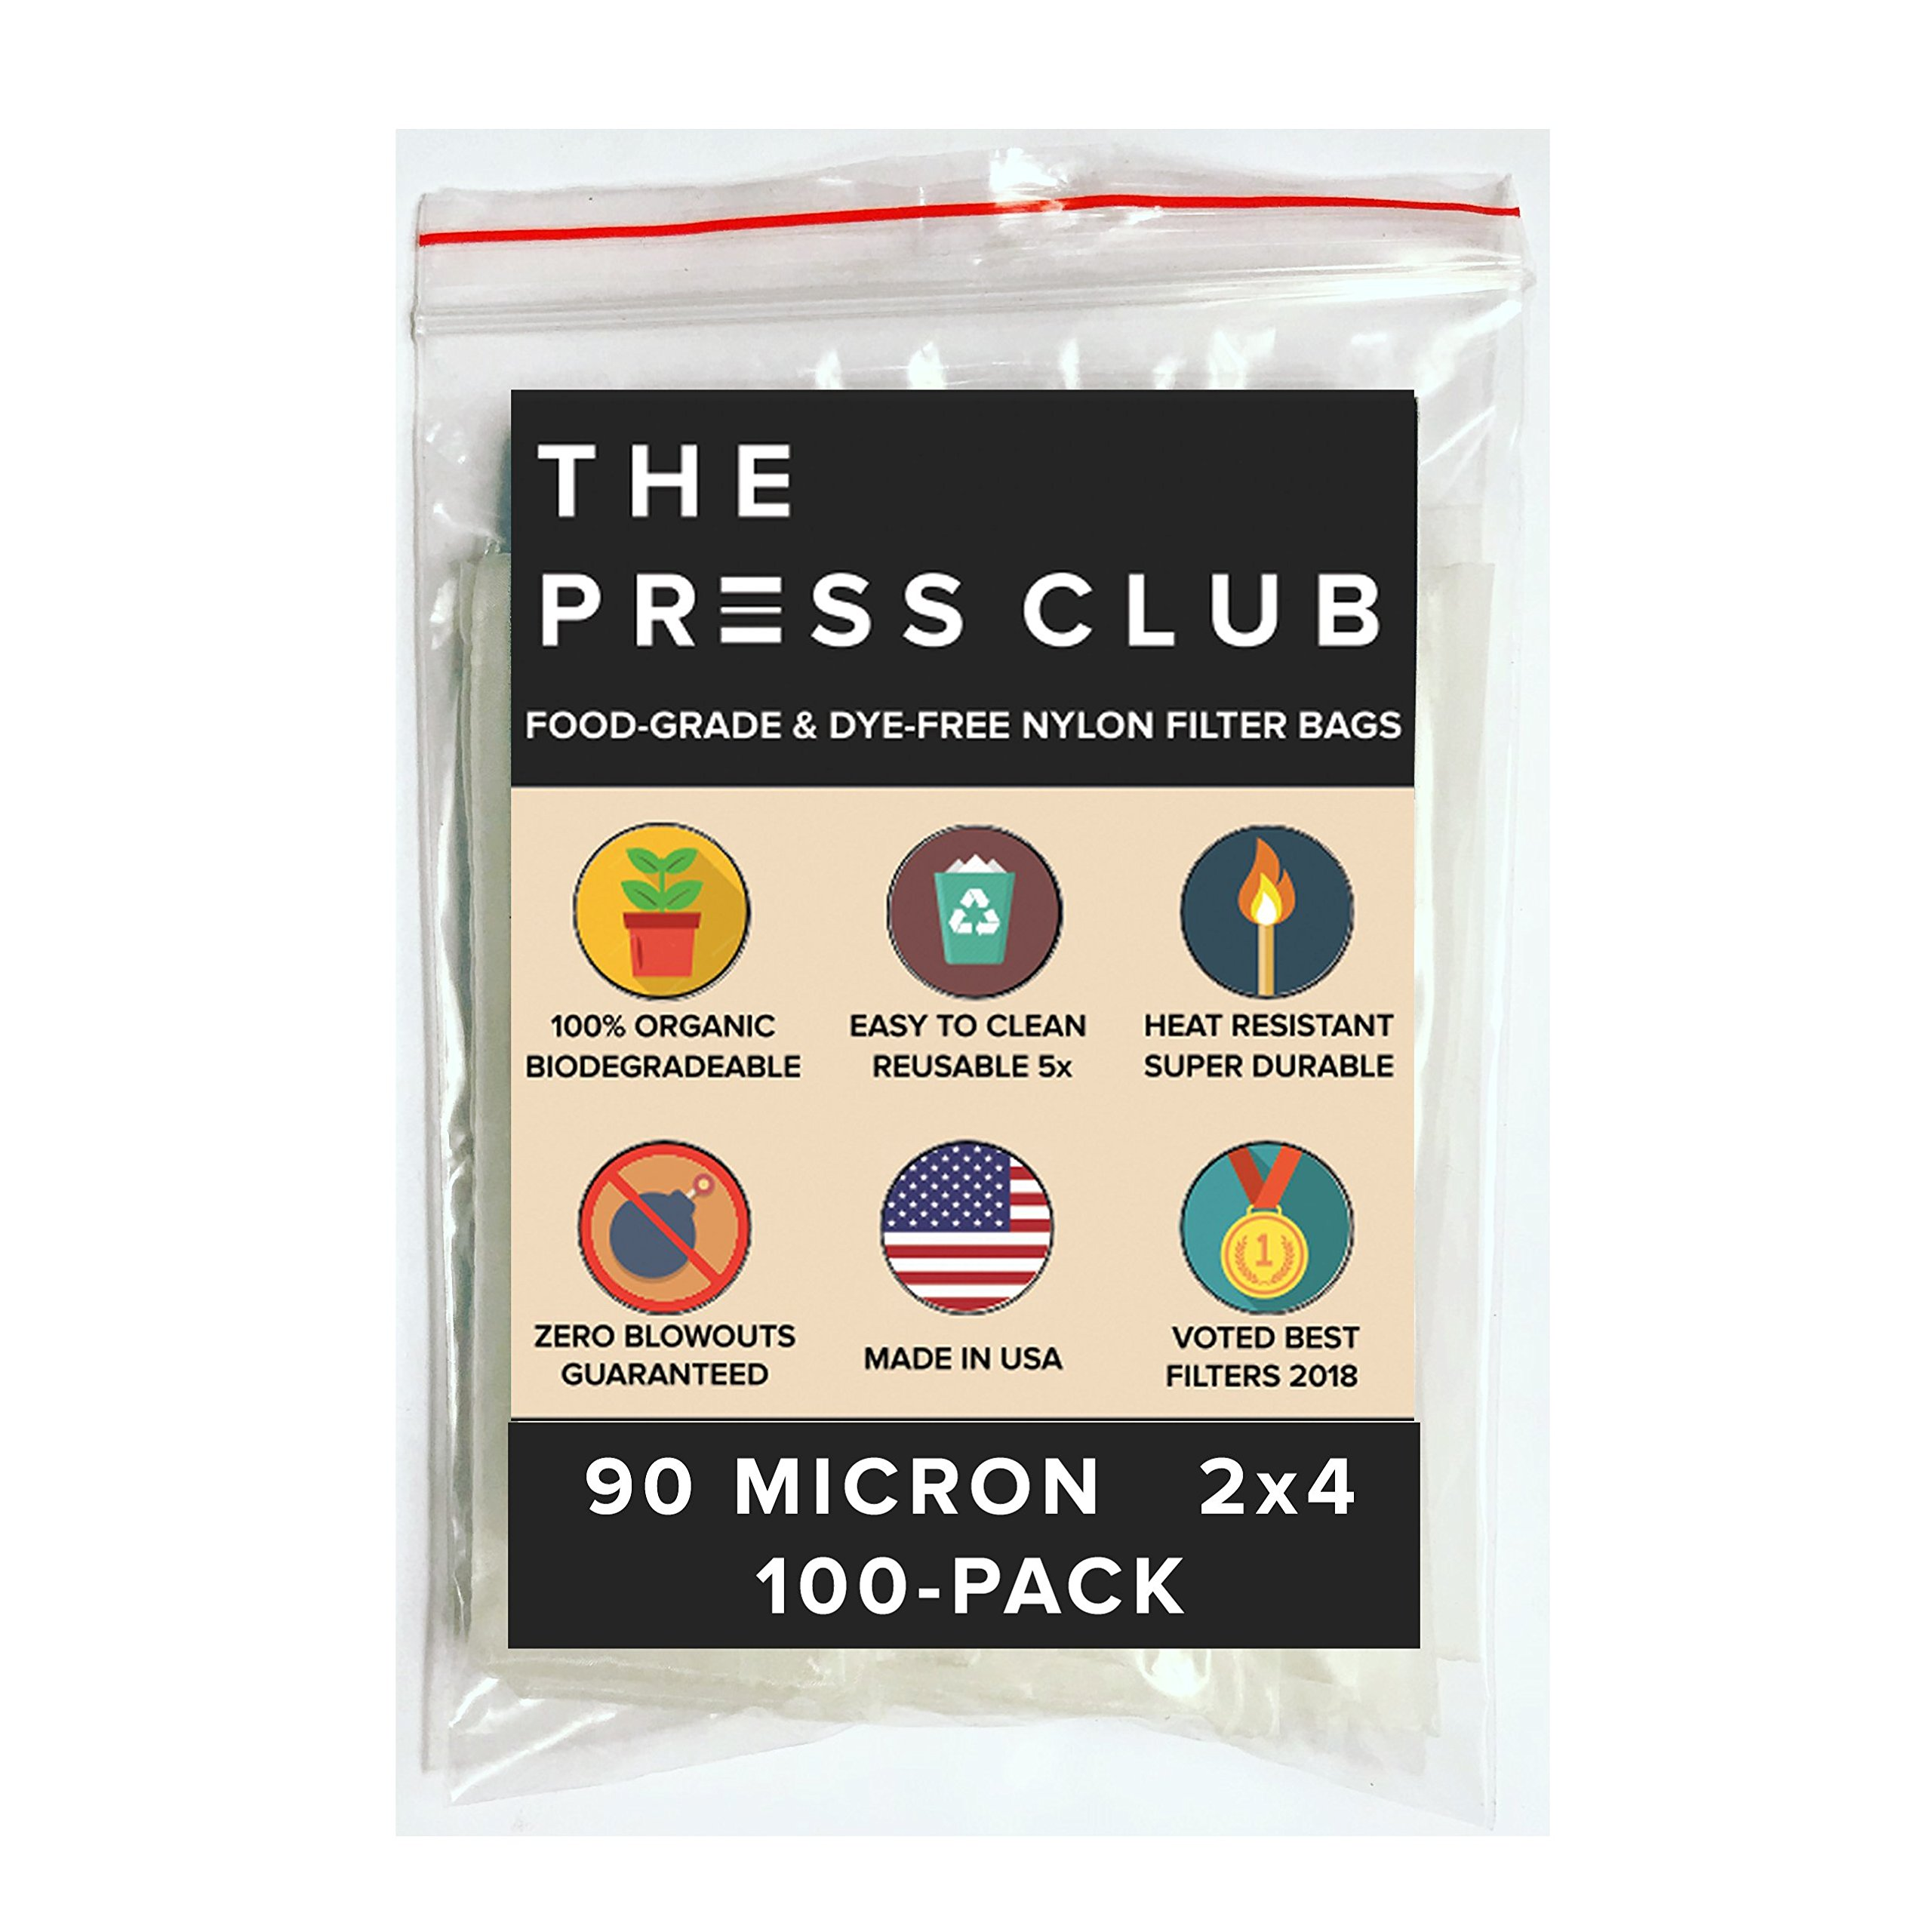 90 Micron | Premium Nylon Tea Filter Press Screen Bags | 2'' x 4'' | 100 Pack | Zero Blowout Guarantee | All Micron & Sizes Available